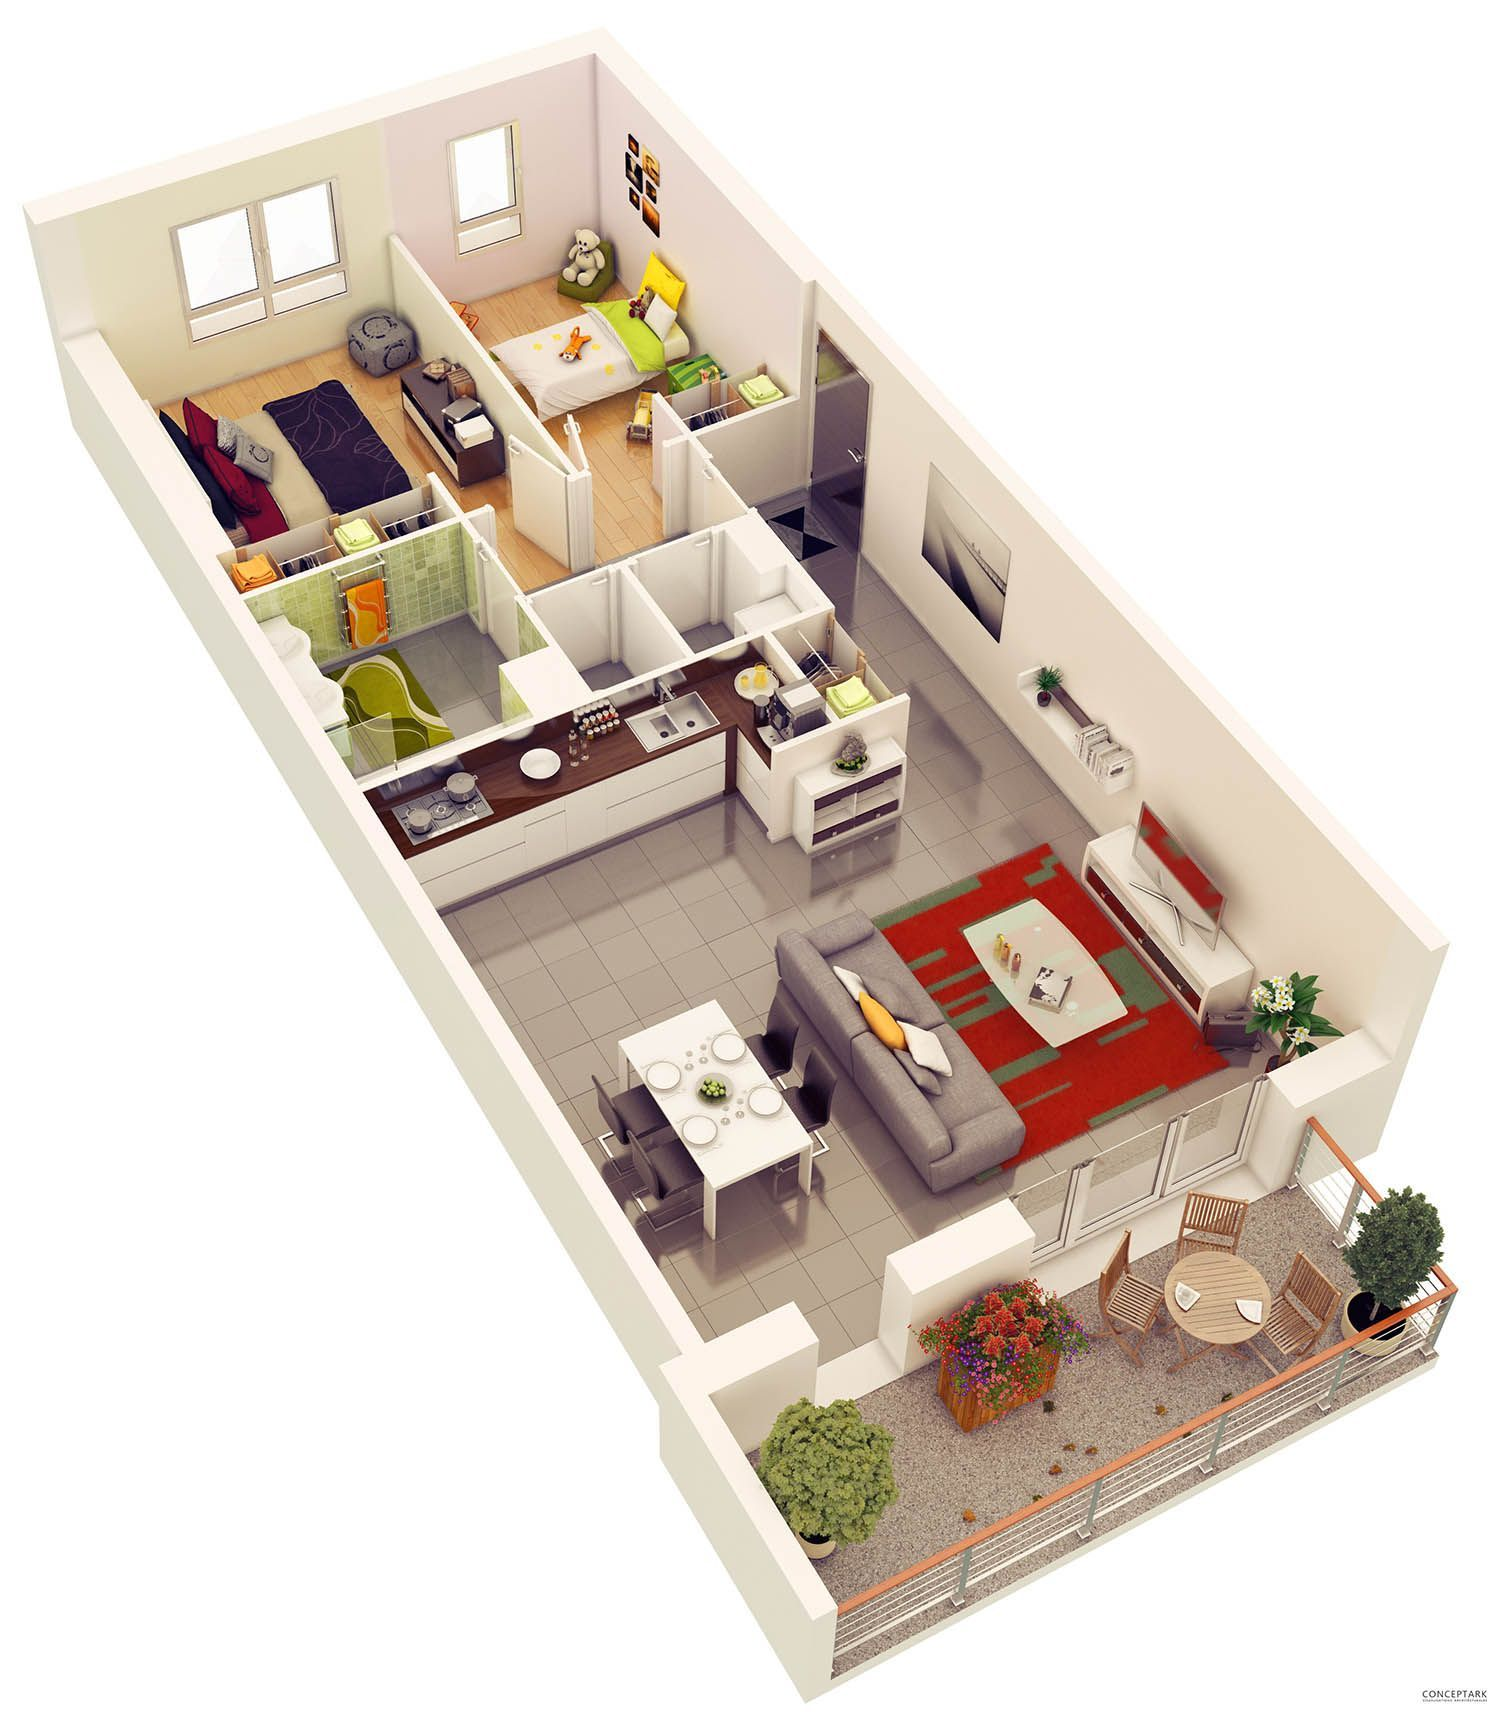 Beautiful Image Of Small Apartment Plans 2 Bedroom Small Apartment Plans Small Apartment Floor Plans House Layout Plans